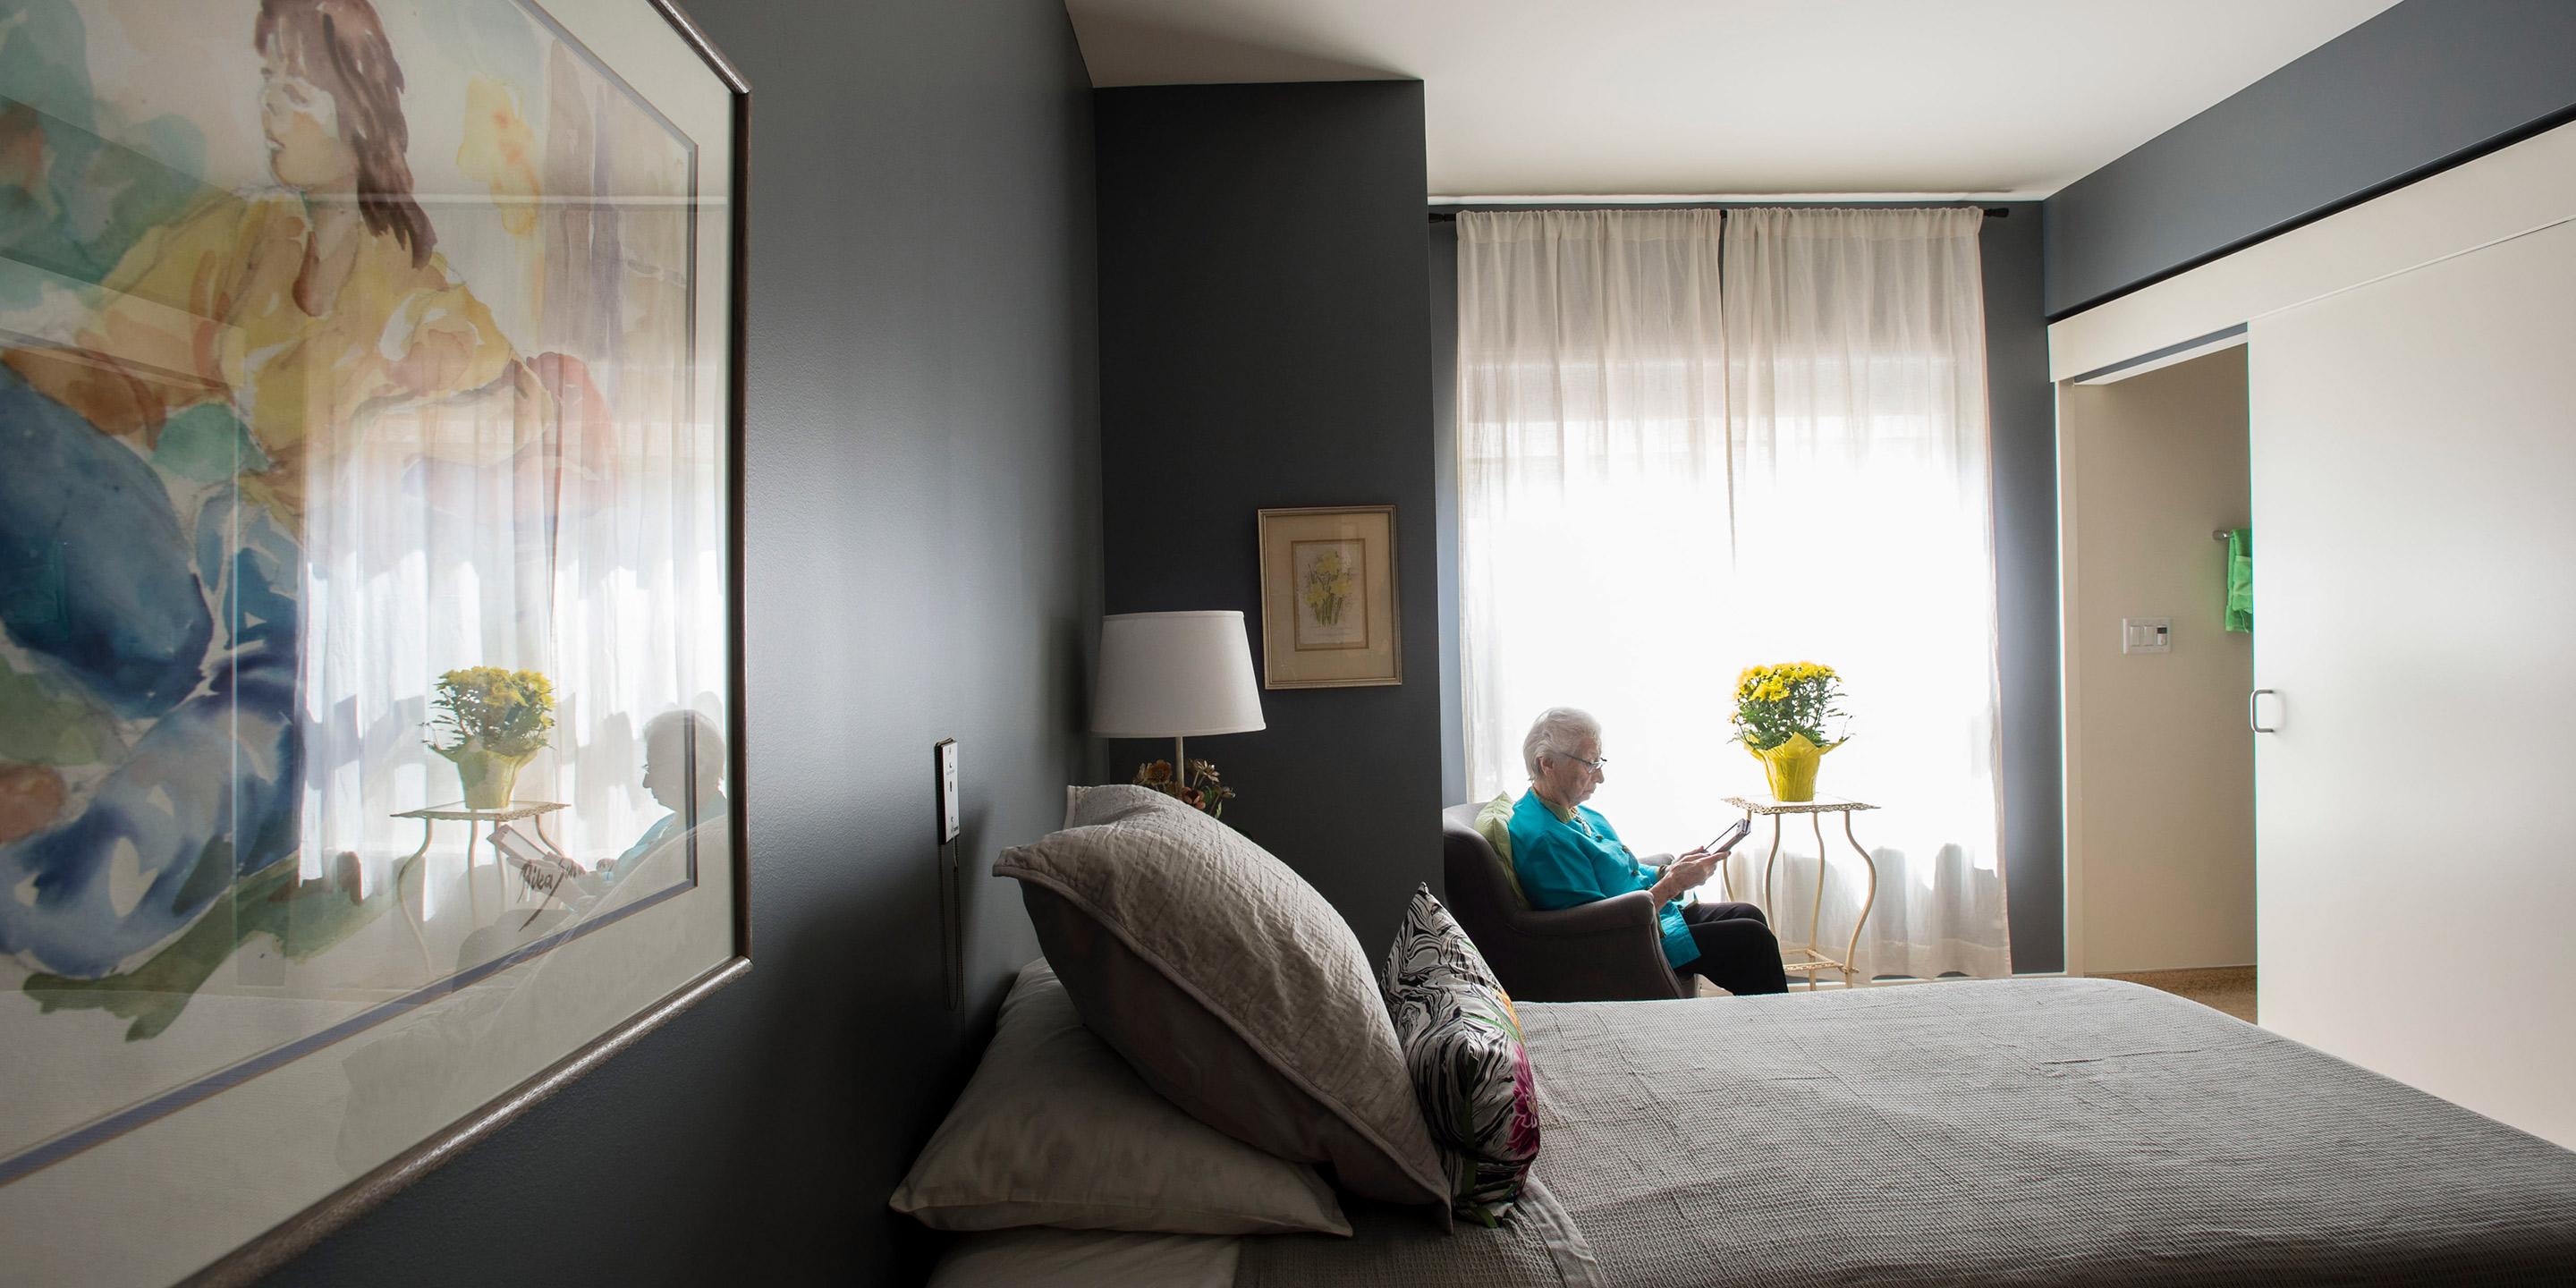 An older adult woman sits in a chair by the window in her room and reads